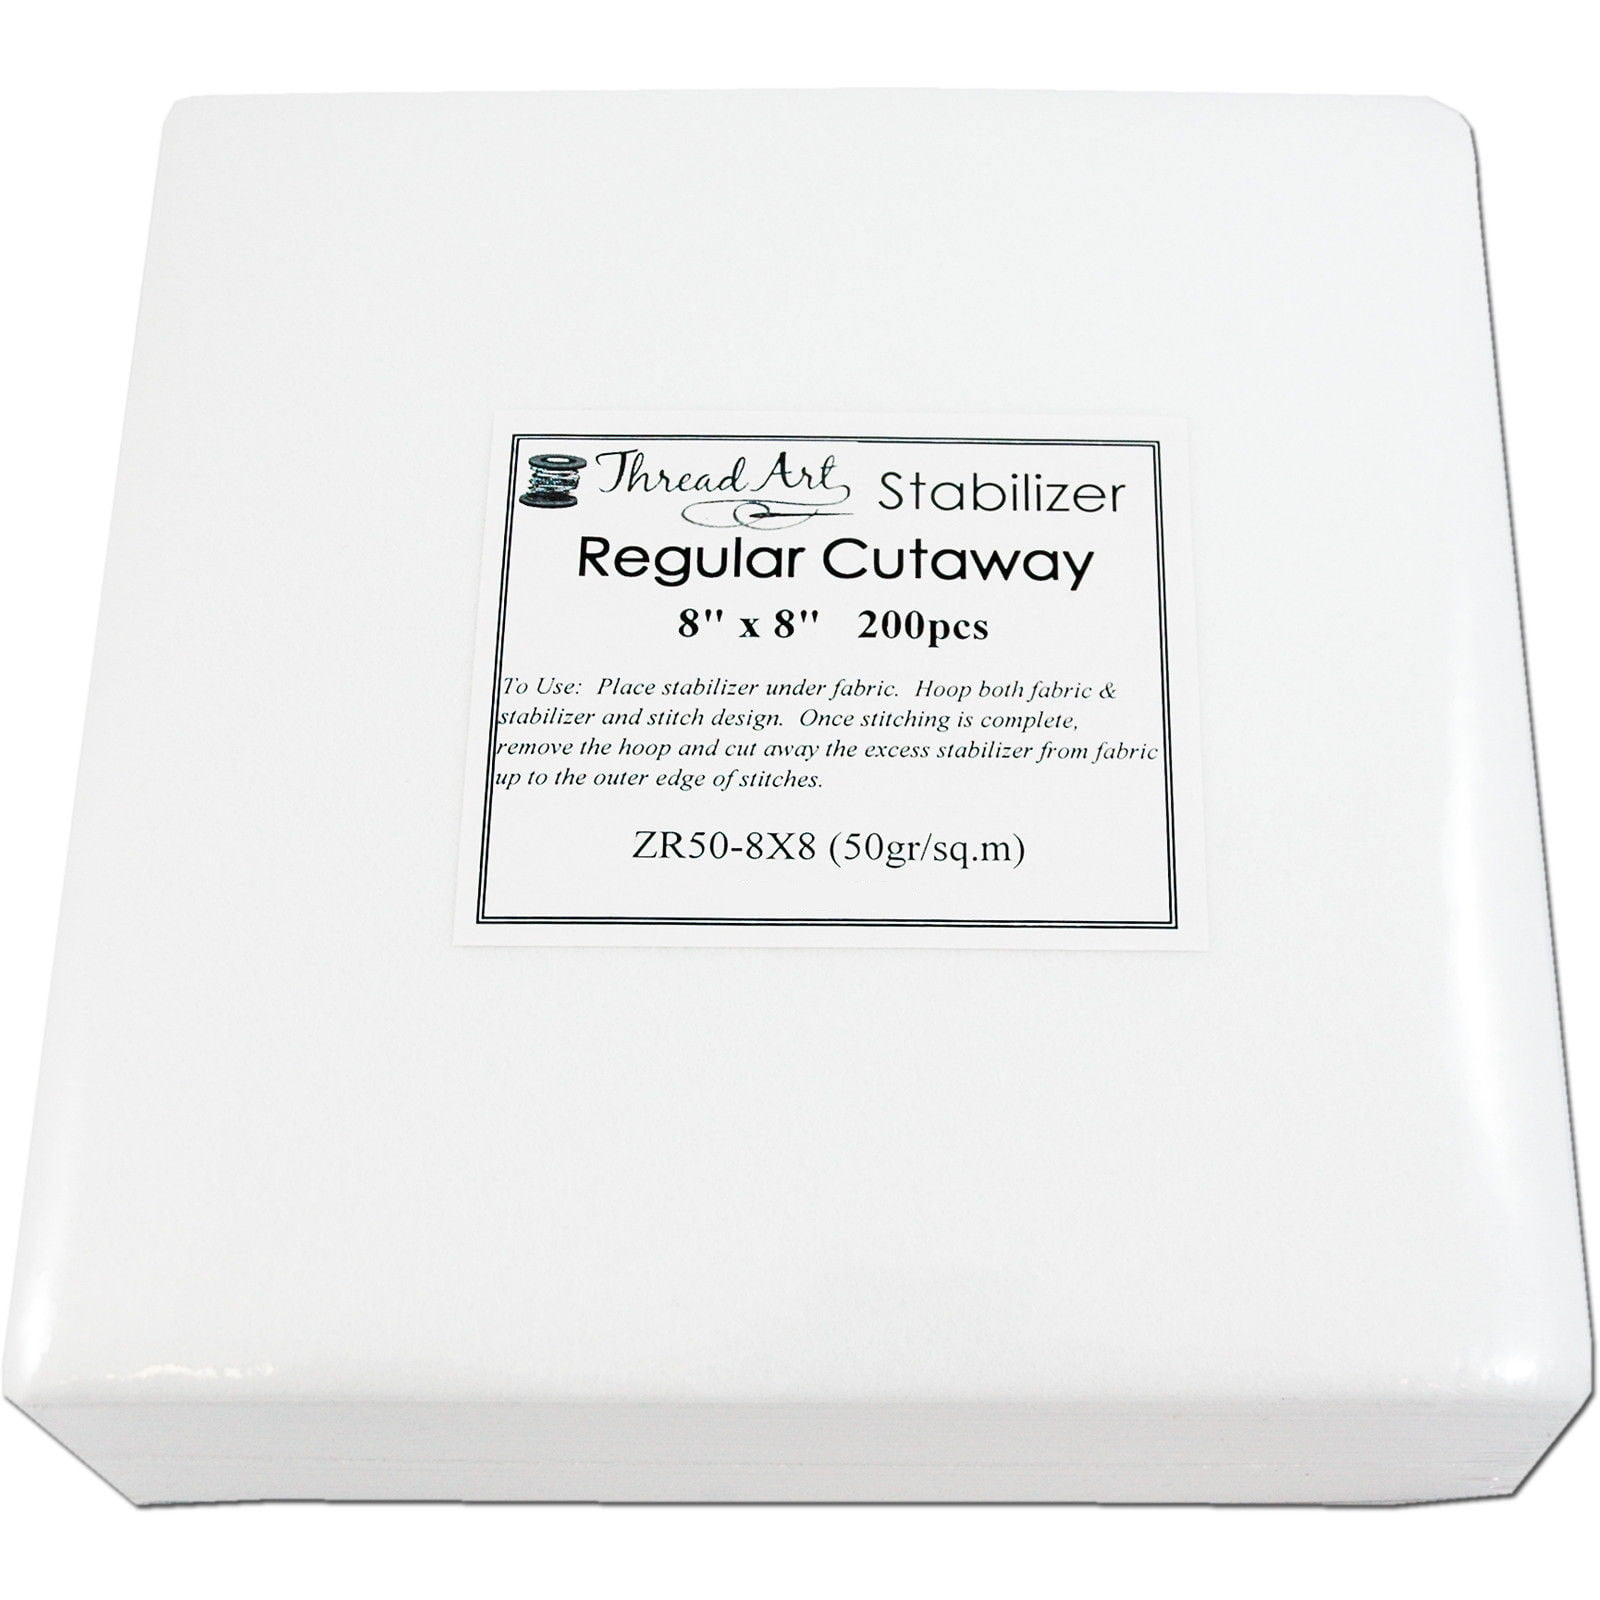 For Machine Embroidery Tearaway Sticky in Rolls and Precut Sheets Washaway Threadart Tearaway Embroidery Stabilizer 11x11 100 Precut Sheets Also Available Over 20 Additional Styles of Cutaway 1.6 oz Medium Weight